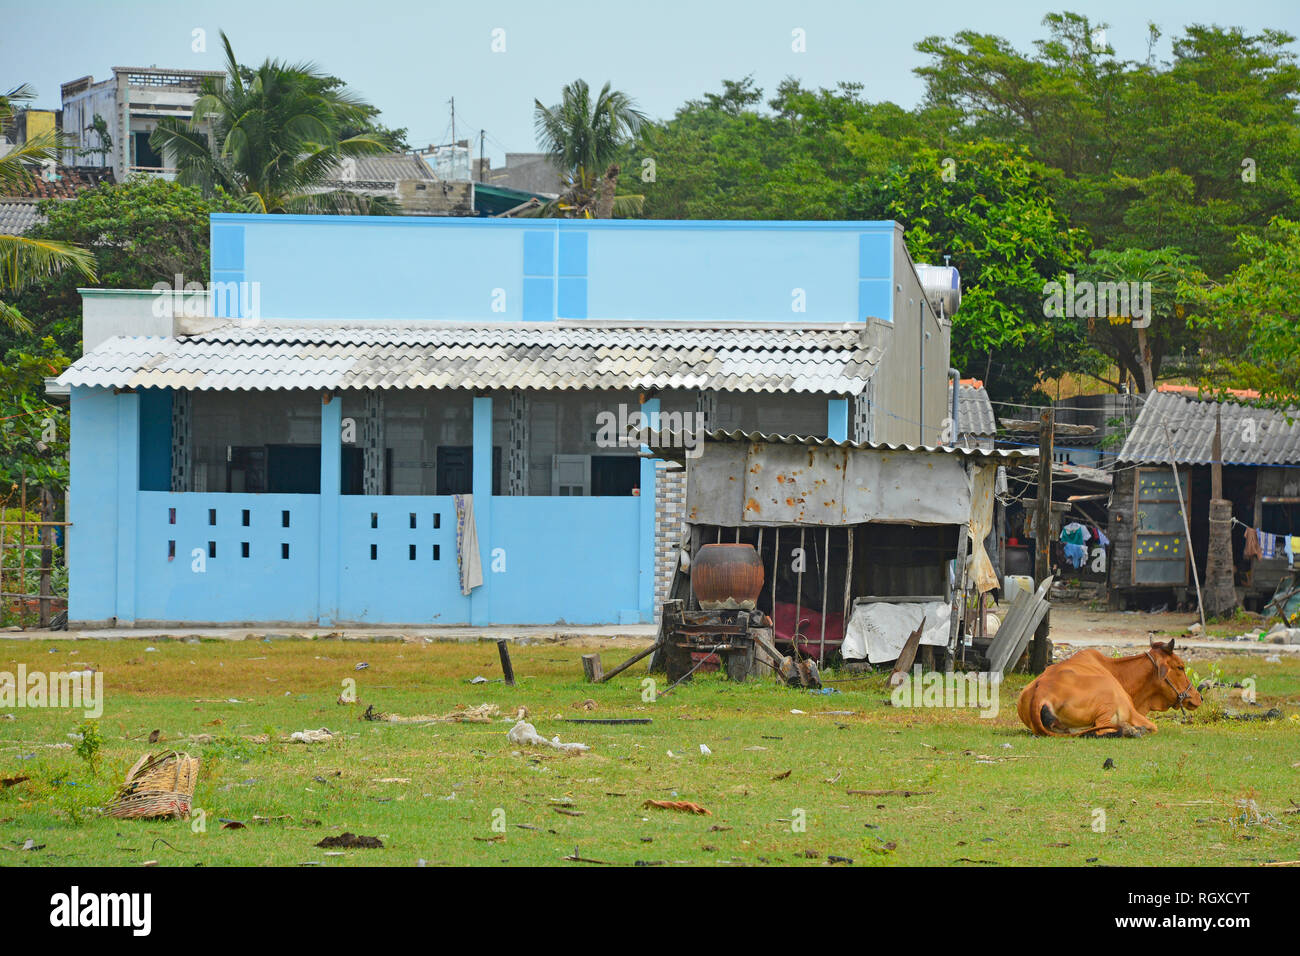 A cow tethered outside a house in Mui Ne Fishing Village, Vietnam - Stock Image